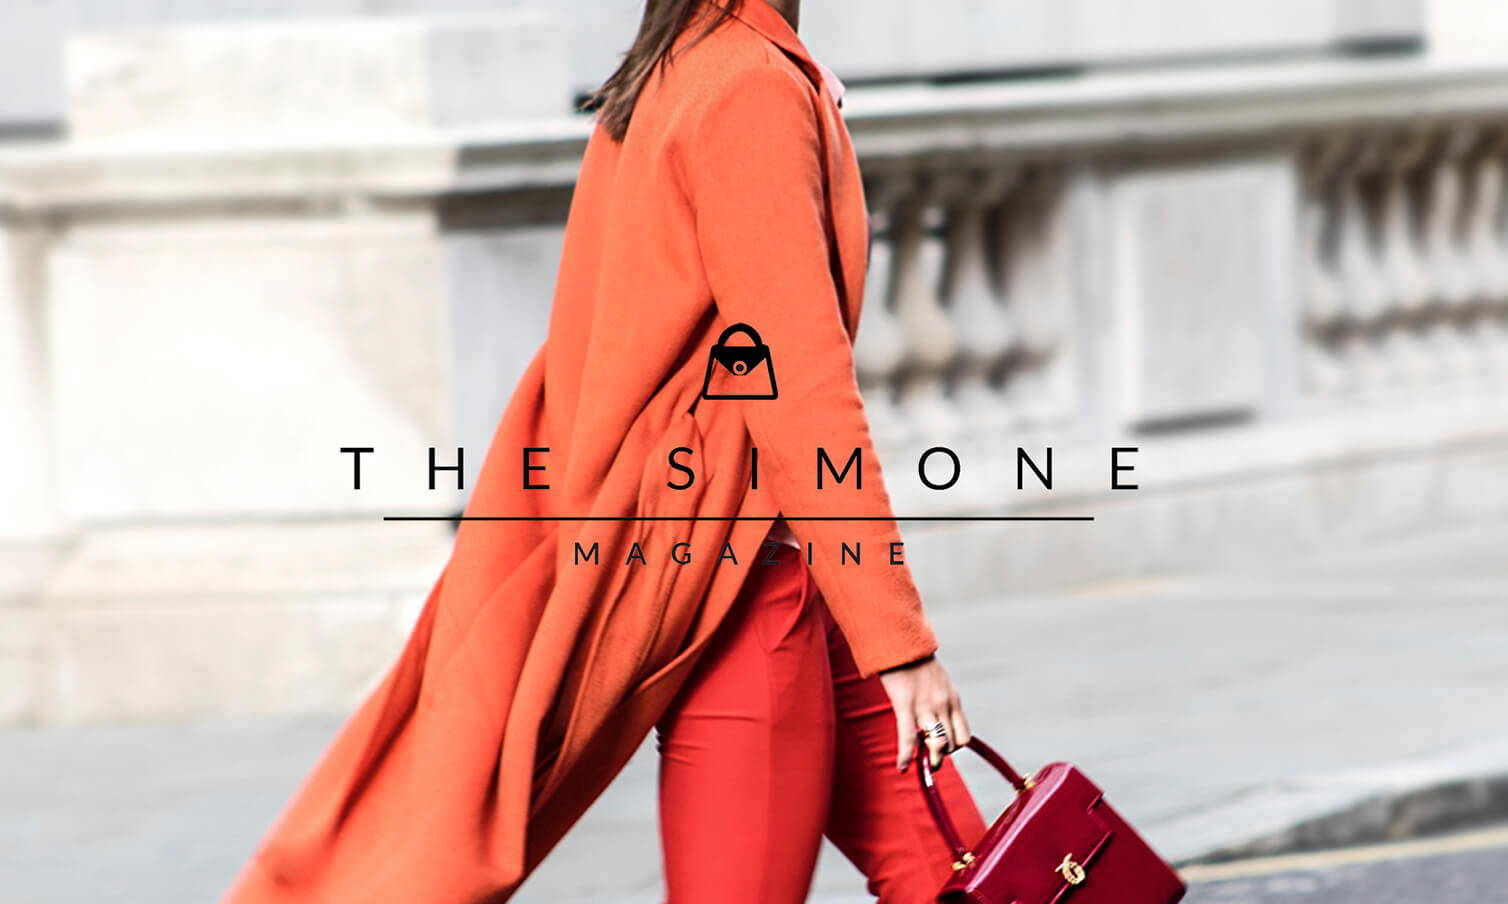 The simone magazine